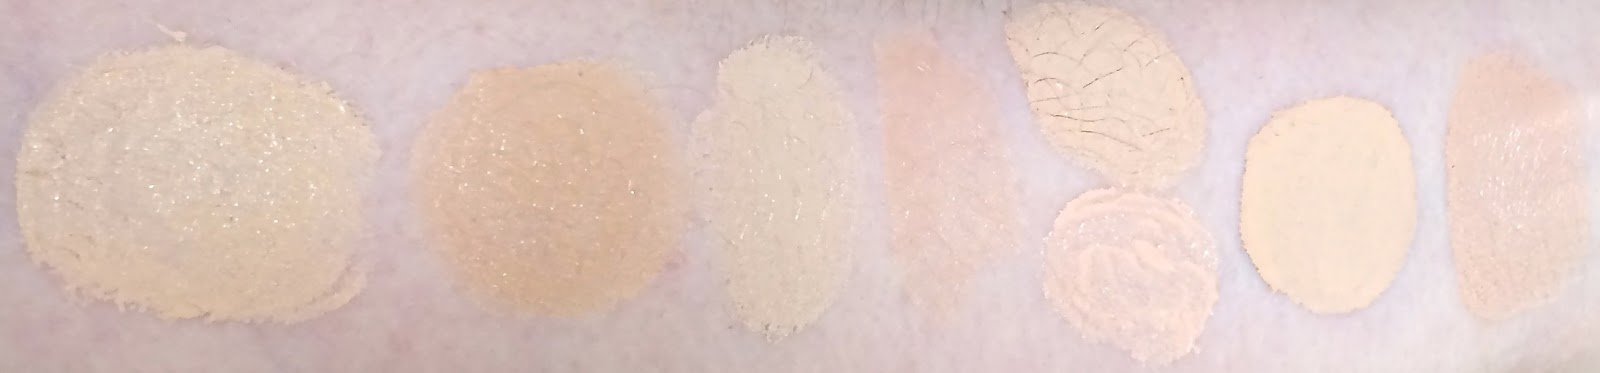 Swatches After Dry Down And In Natural Light. The Perfectionist Brightening  Serum+Concealer Is 3rd From The Right.